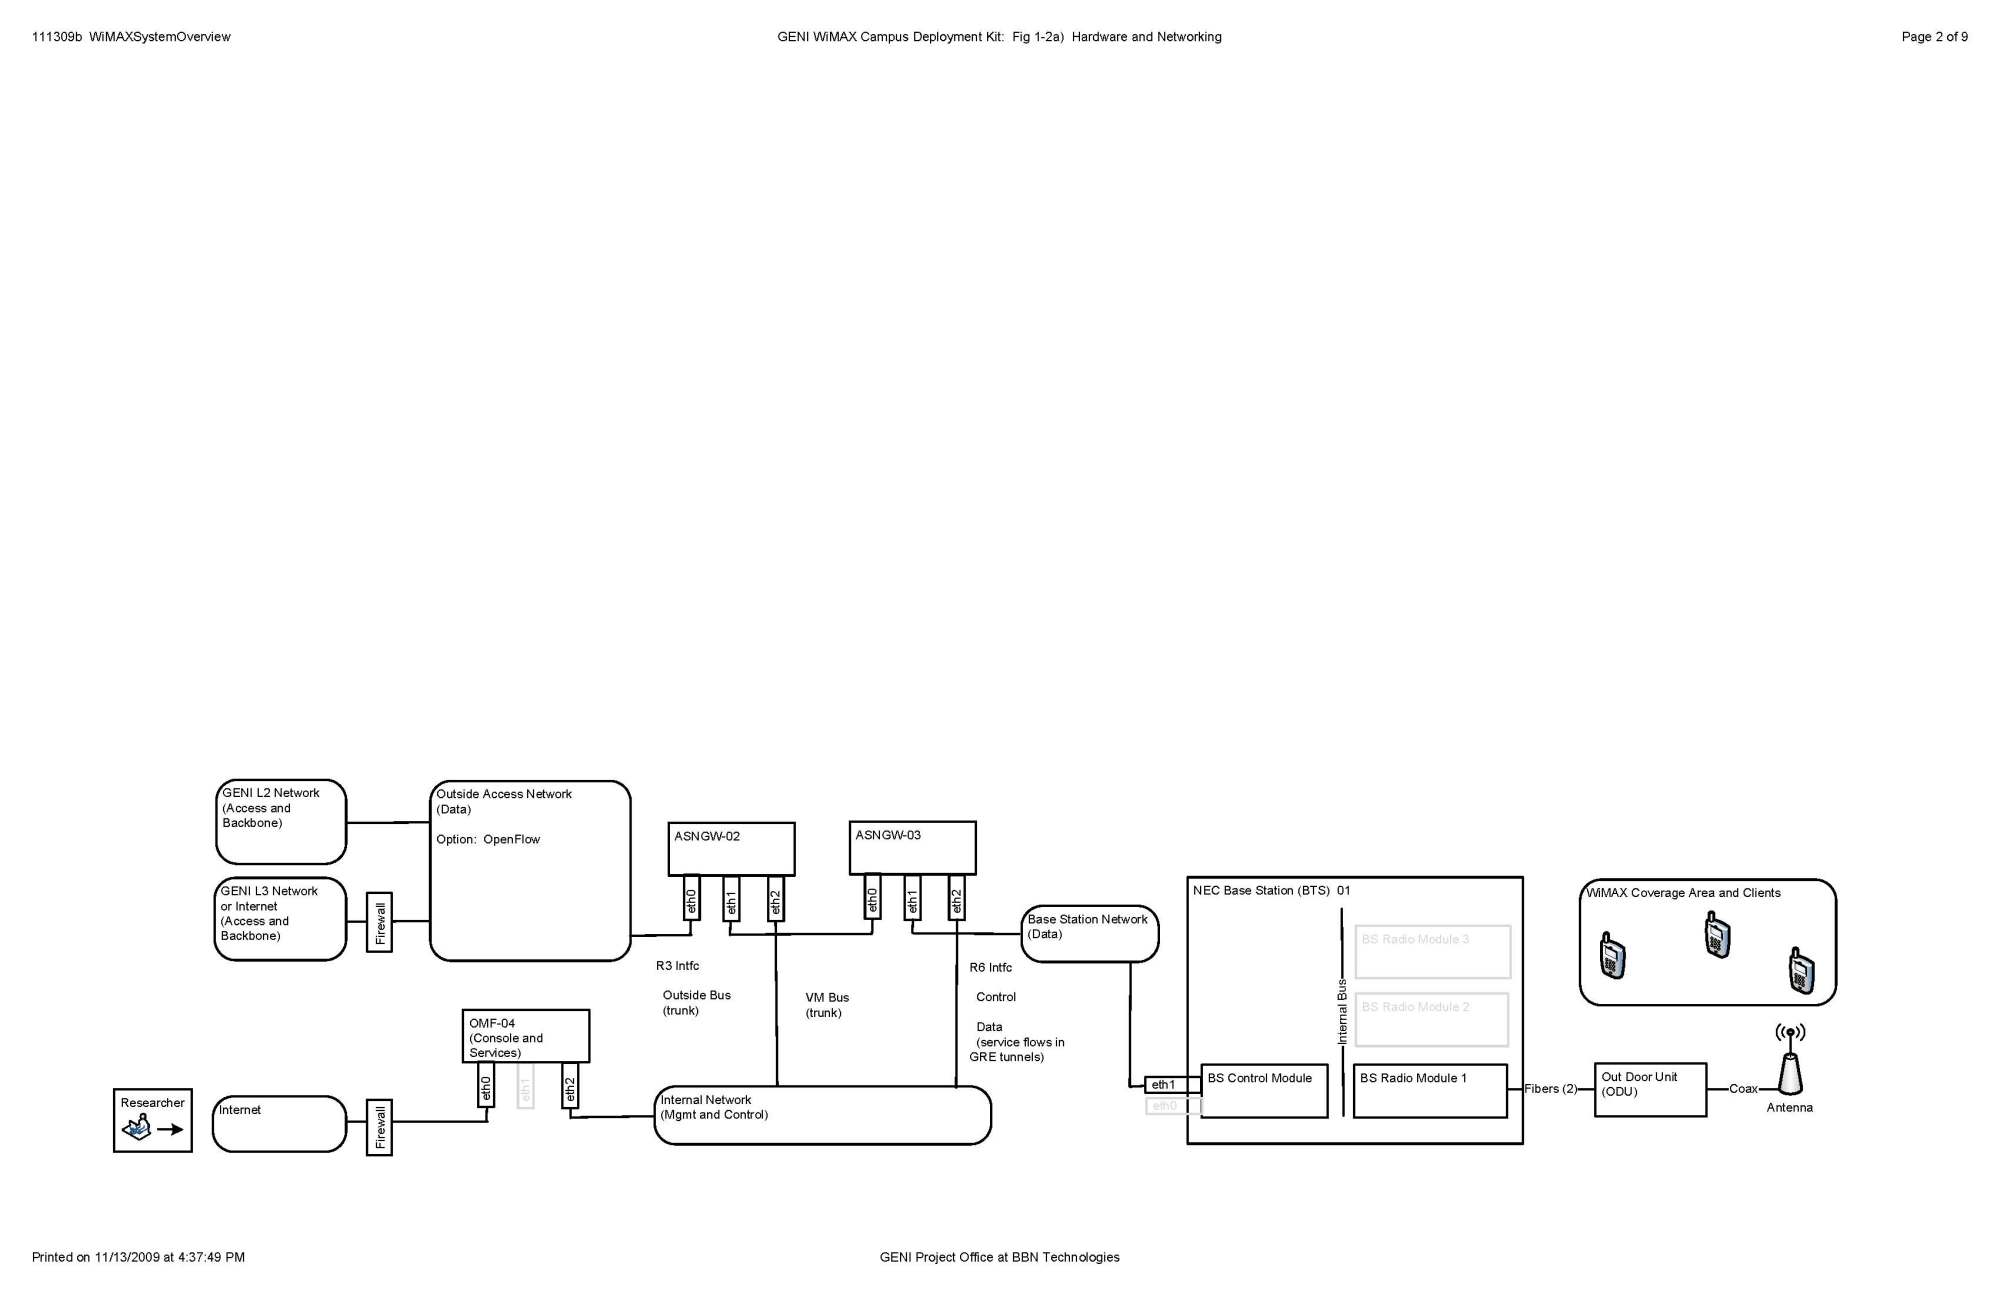 hight resolution of visio 111309b wimaxsystemoverview page 2 jpg 231 0 kb added by hmussman bbn com 9 years ago